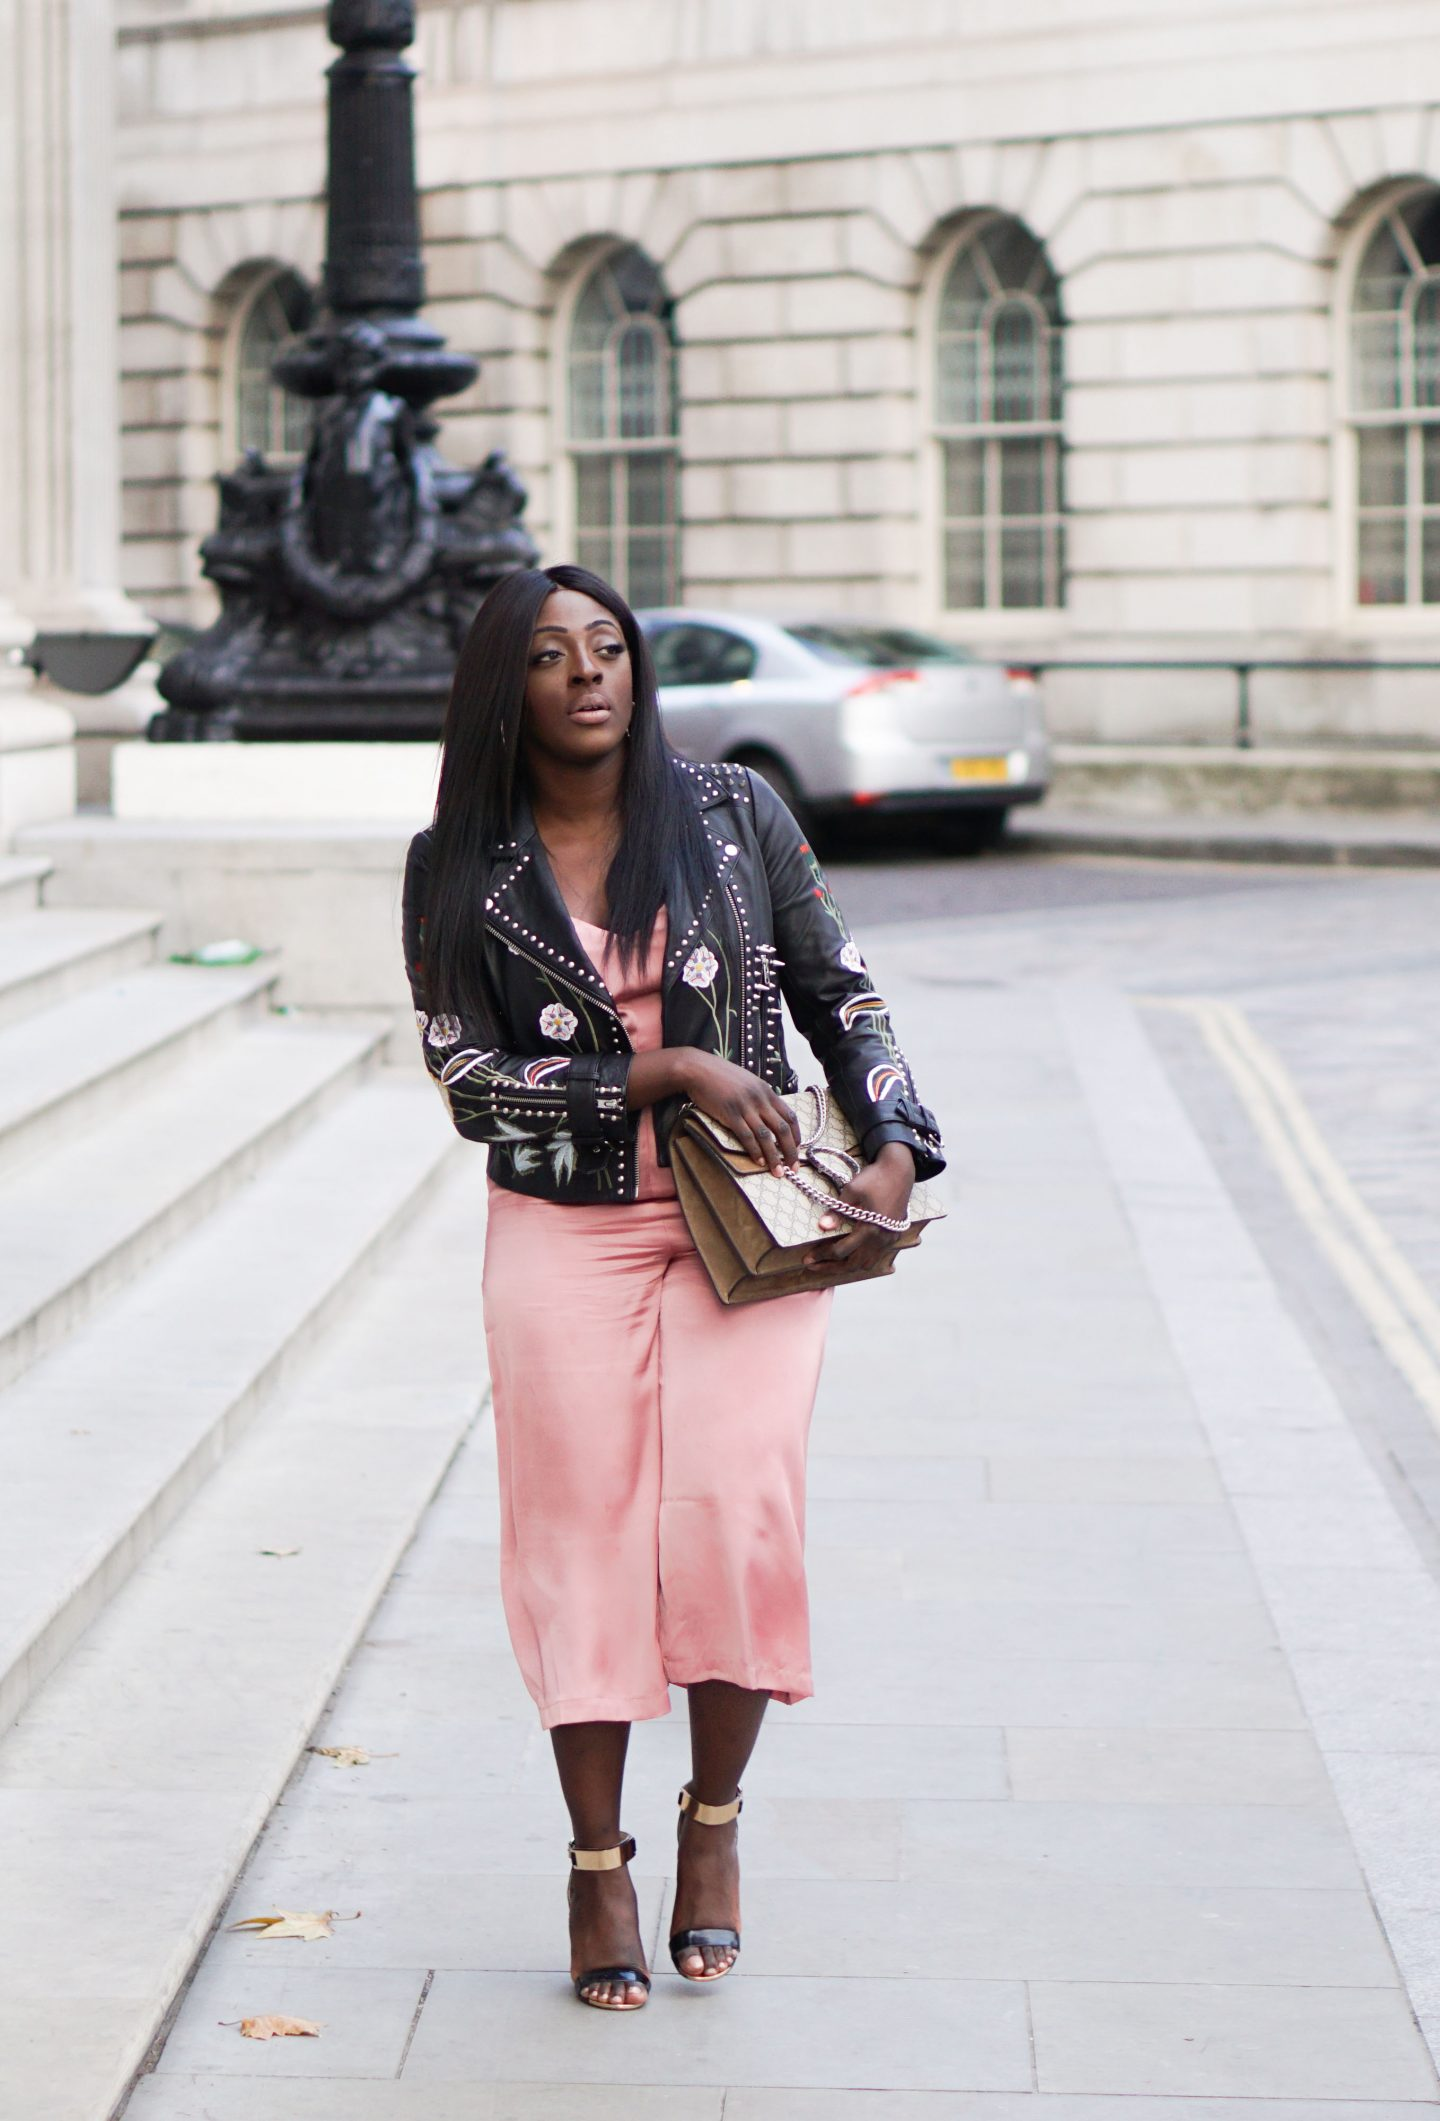 Fashion Blogging: A Year Later 2 - Style and the Sass